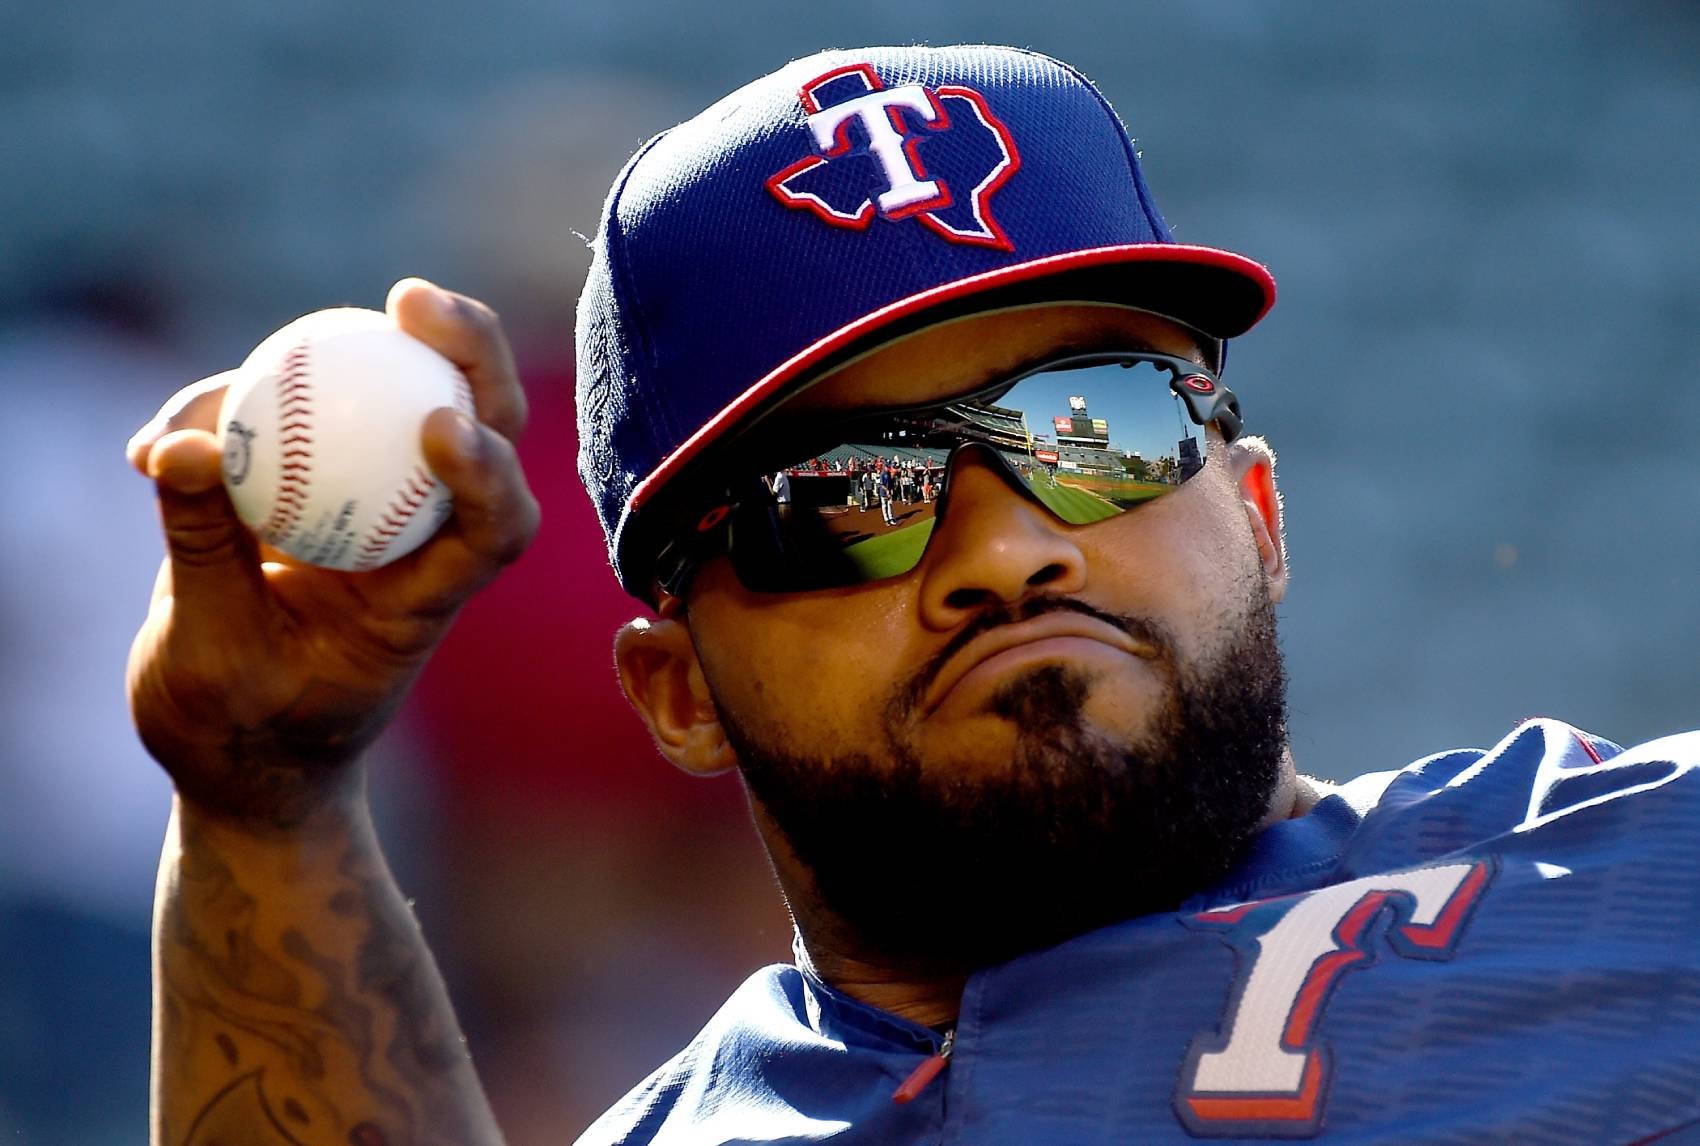 Former Texas Rangers first baseman Prince Fielder could earn MLB's biggest paycheck in 2020. One problem: He hasn't played since 2016.